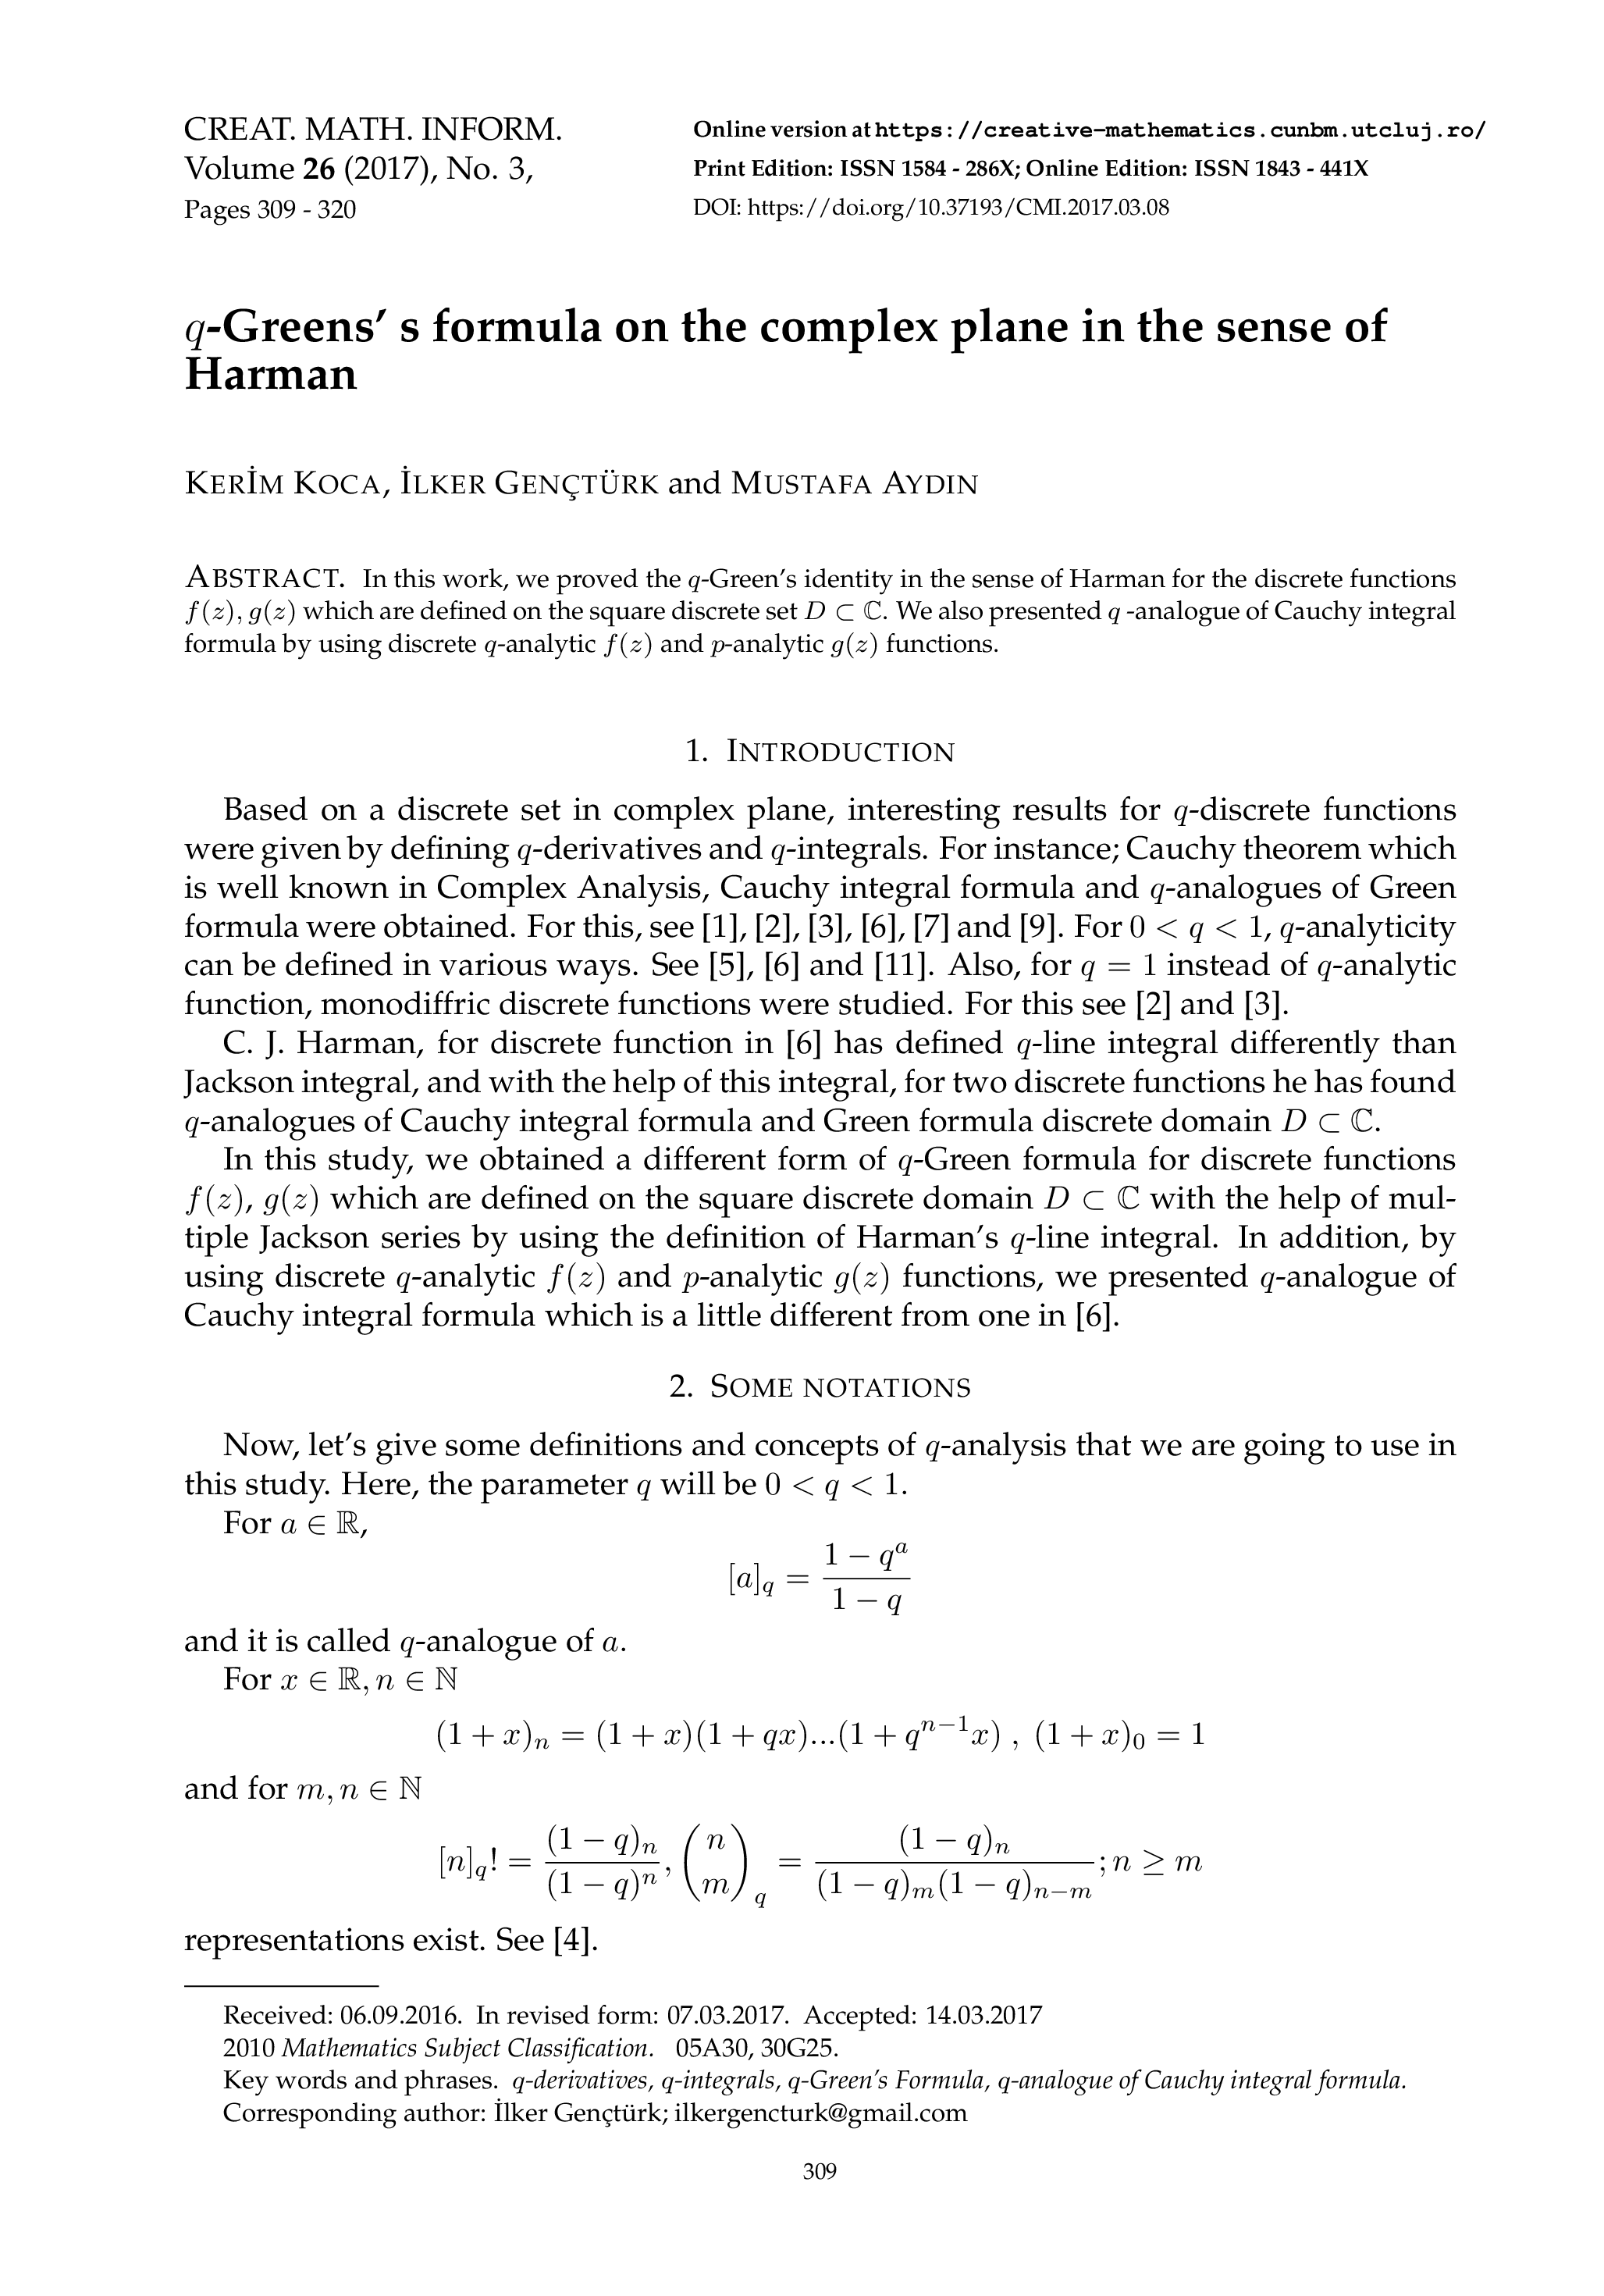 ... q-Greens' s formula on the complex plane in the sense of Harman ...